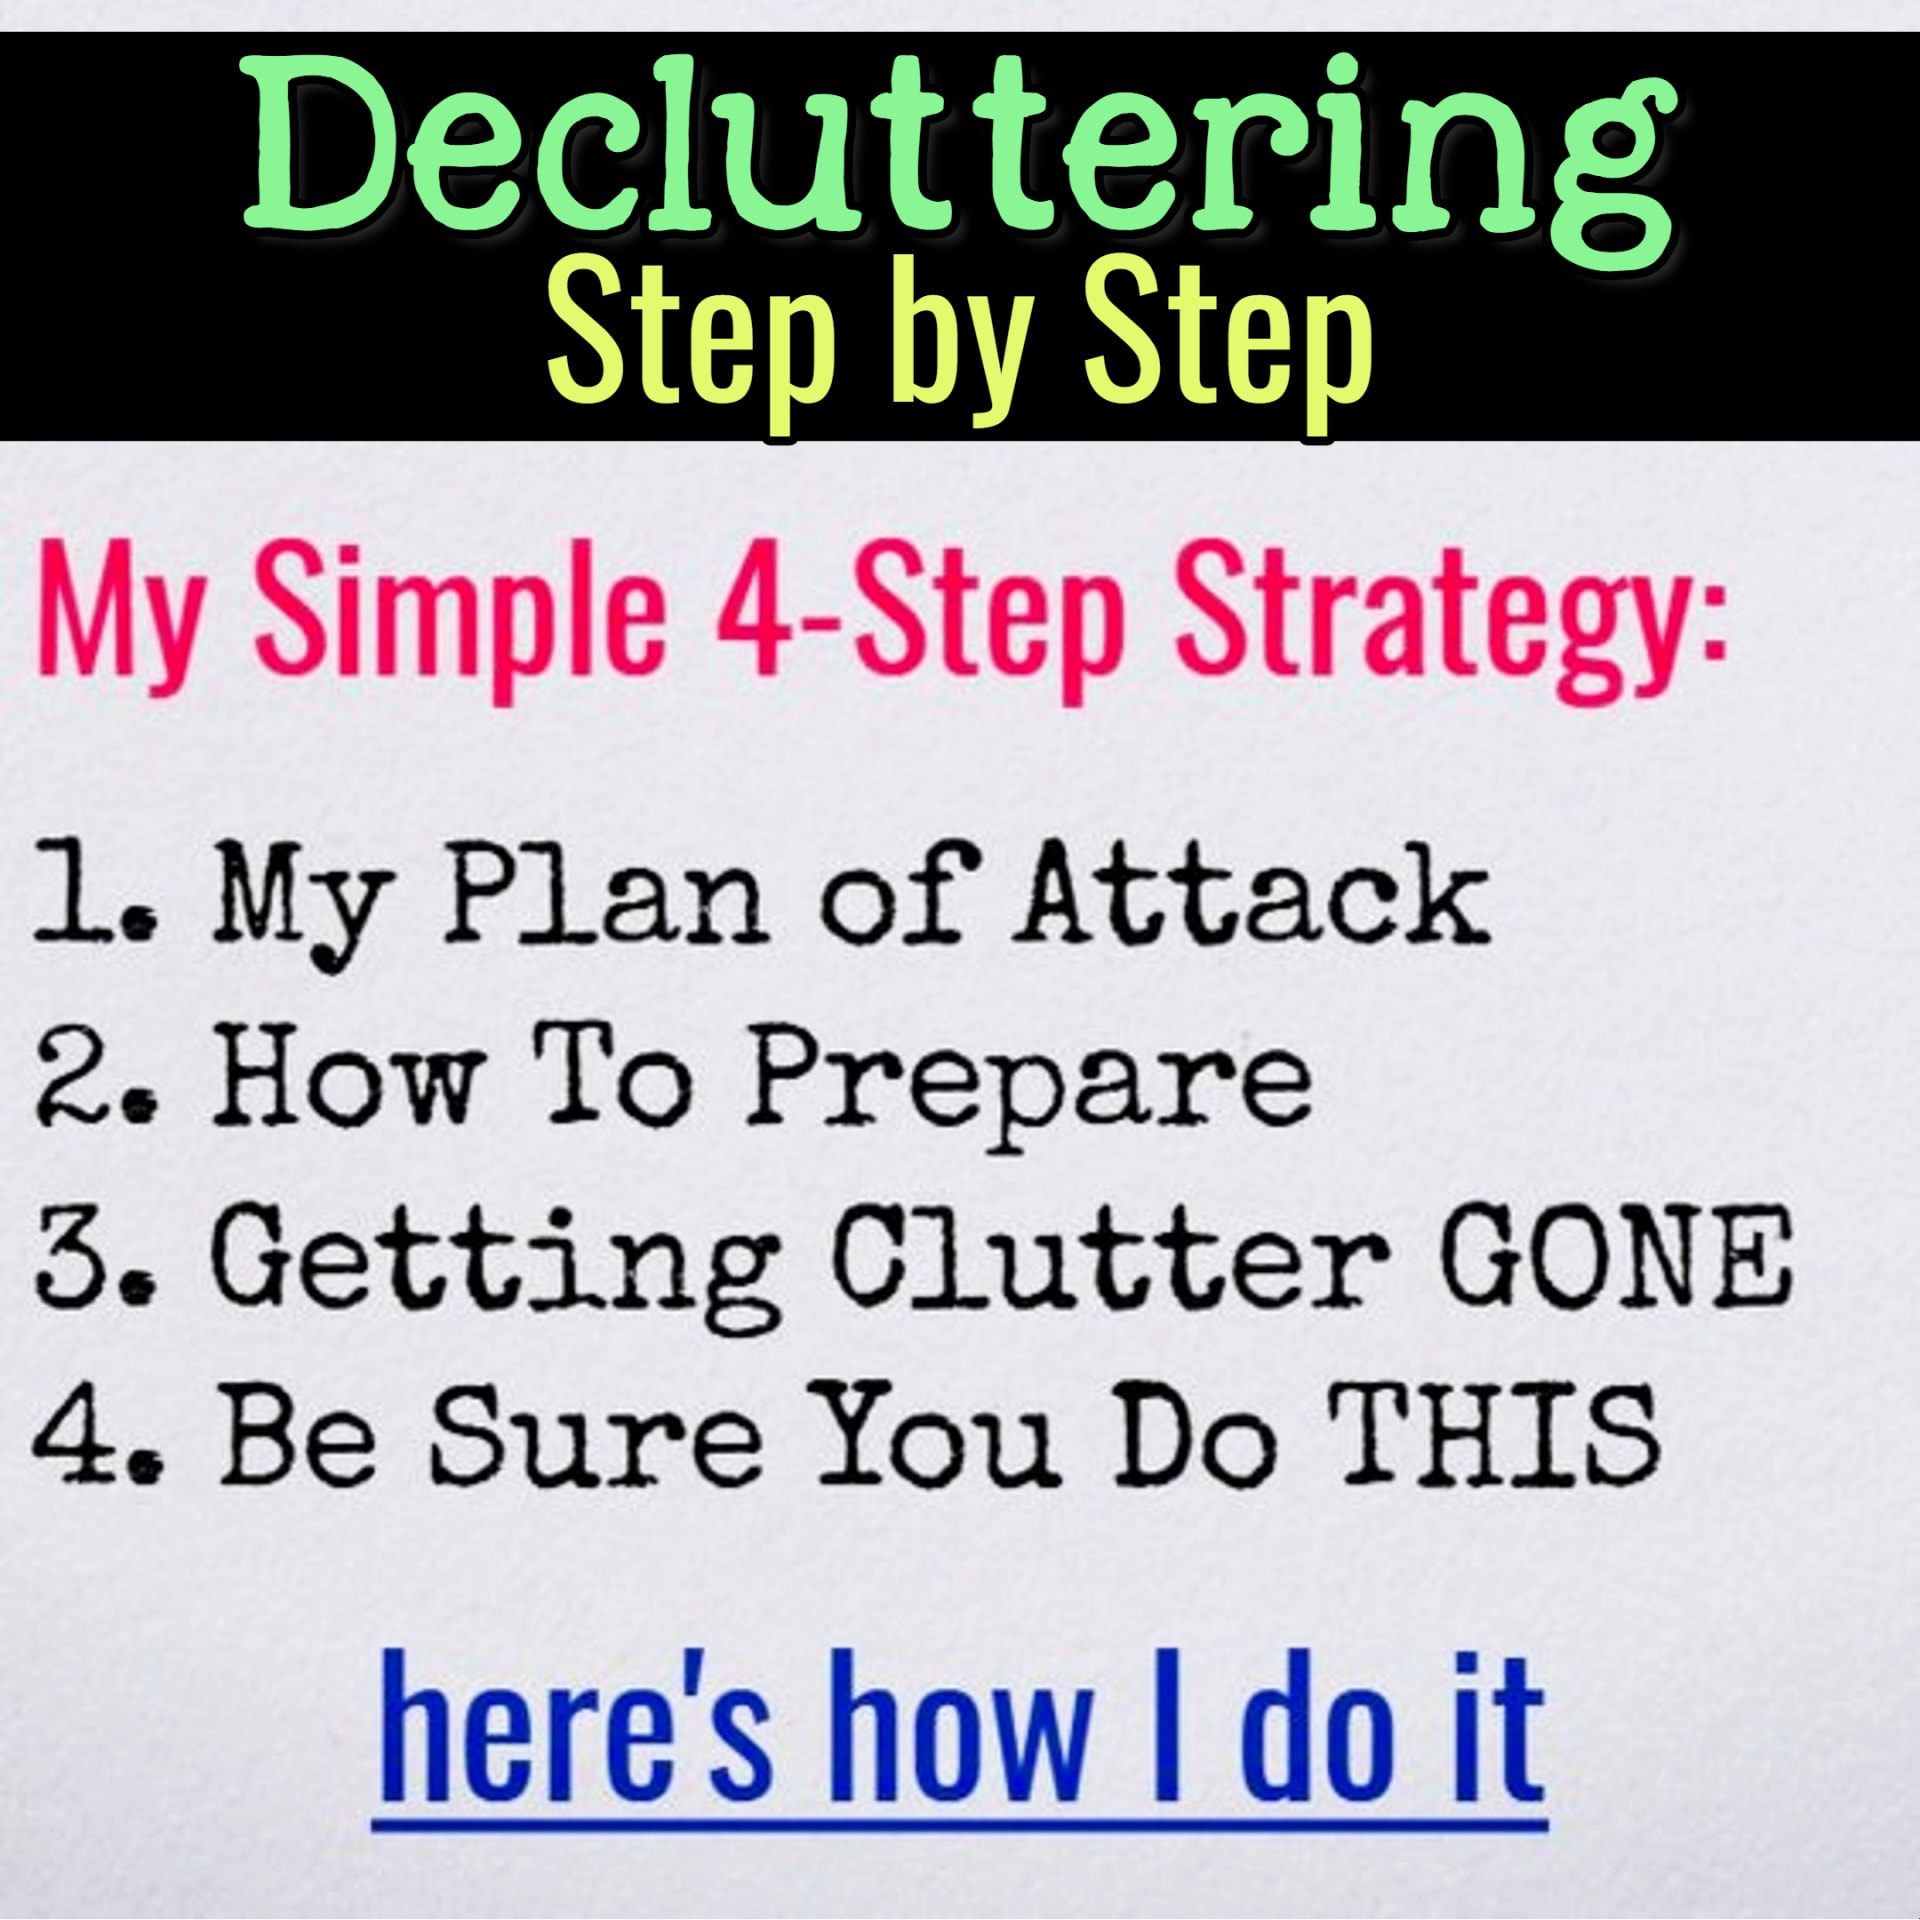 Decluttering Step By Step - Organizing Ideas For The Home - Decluttering Ideas if you're feeling overwhelmed - where to start decluttering and organizing your messy house - decluttering step by step to declutter and organize without feeling overwhelmed